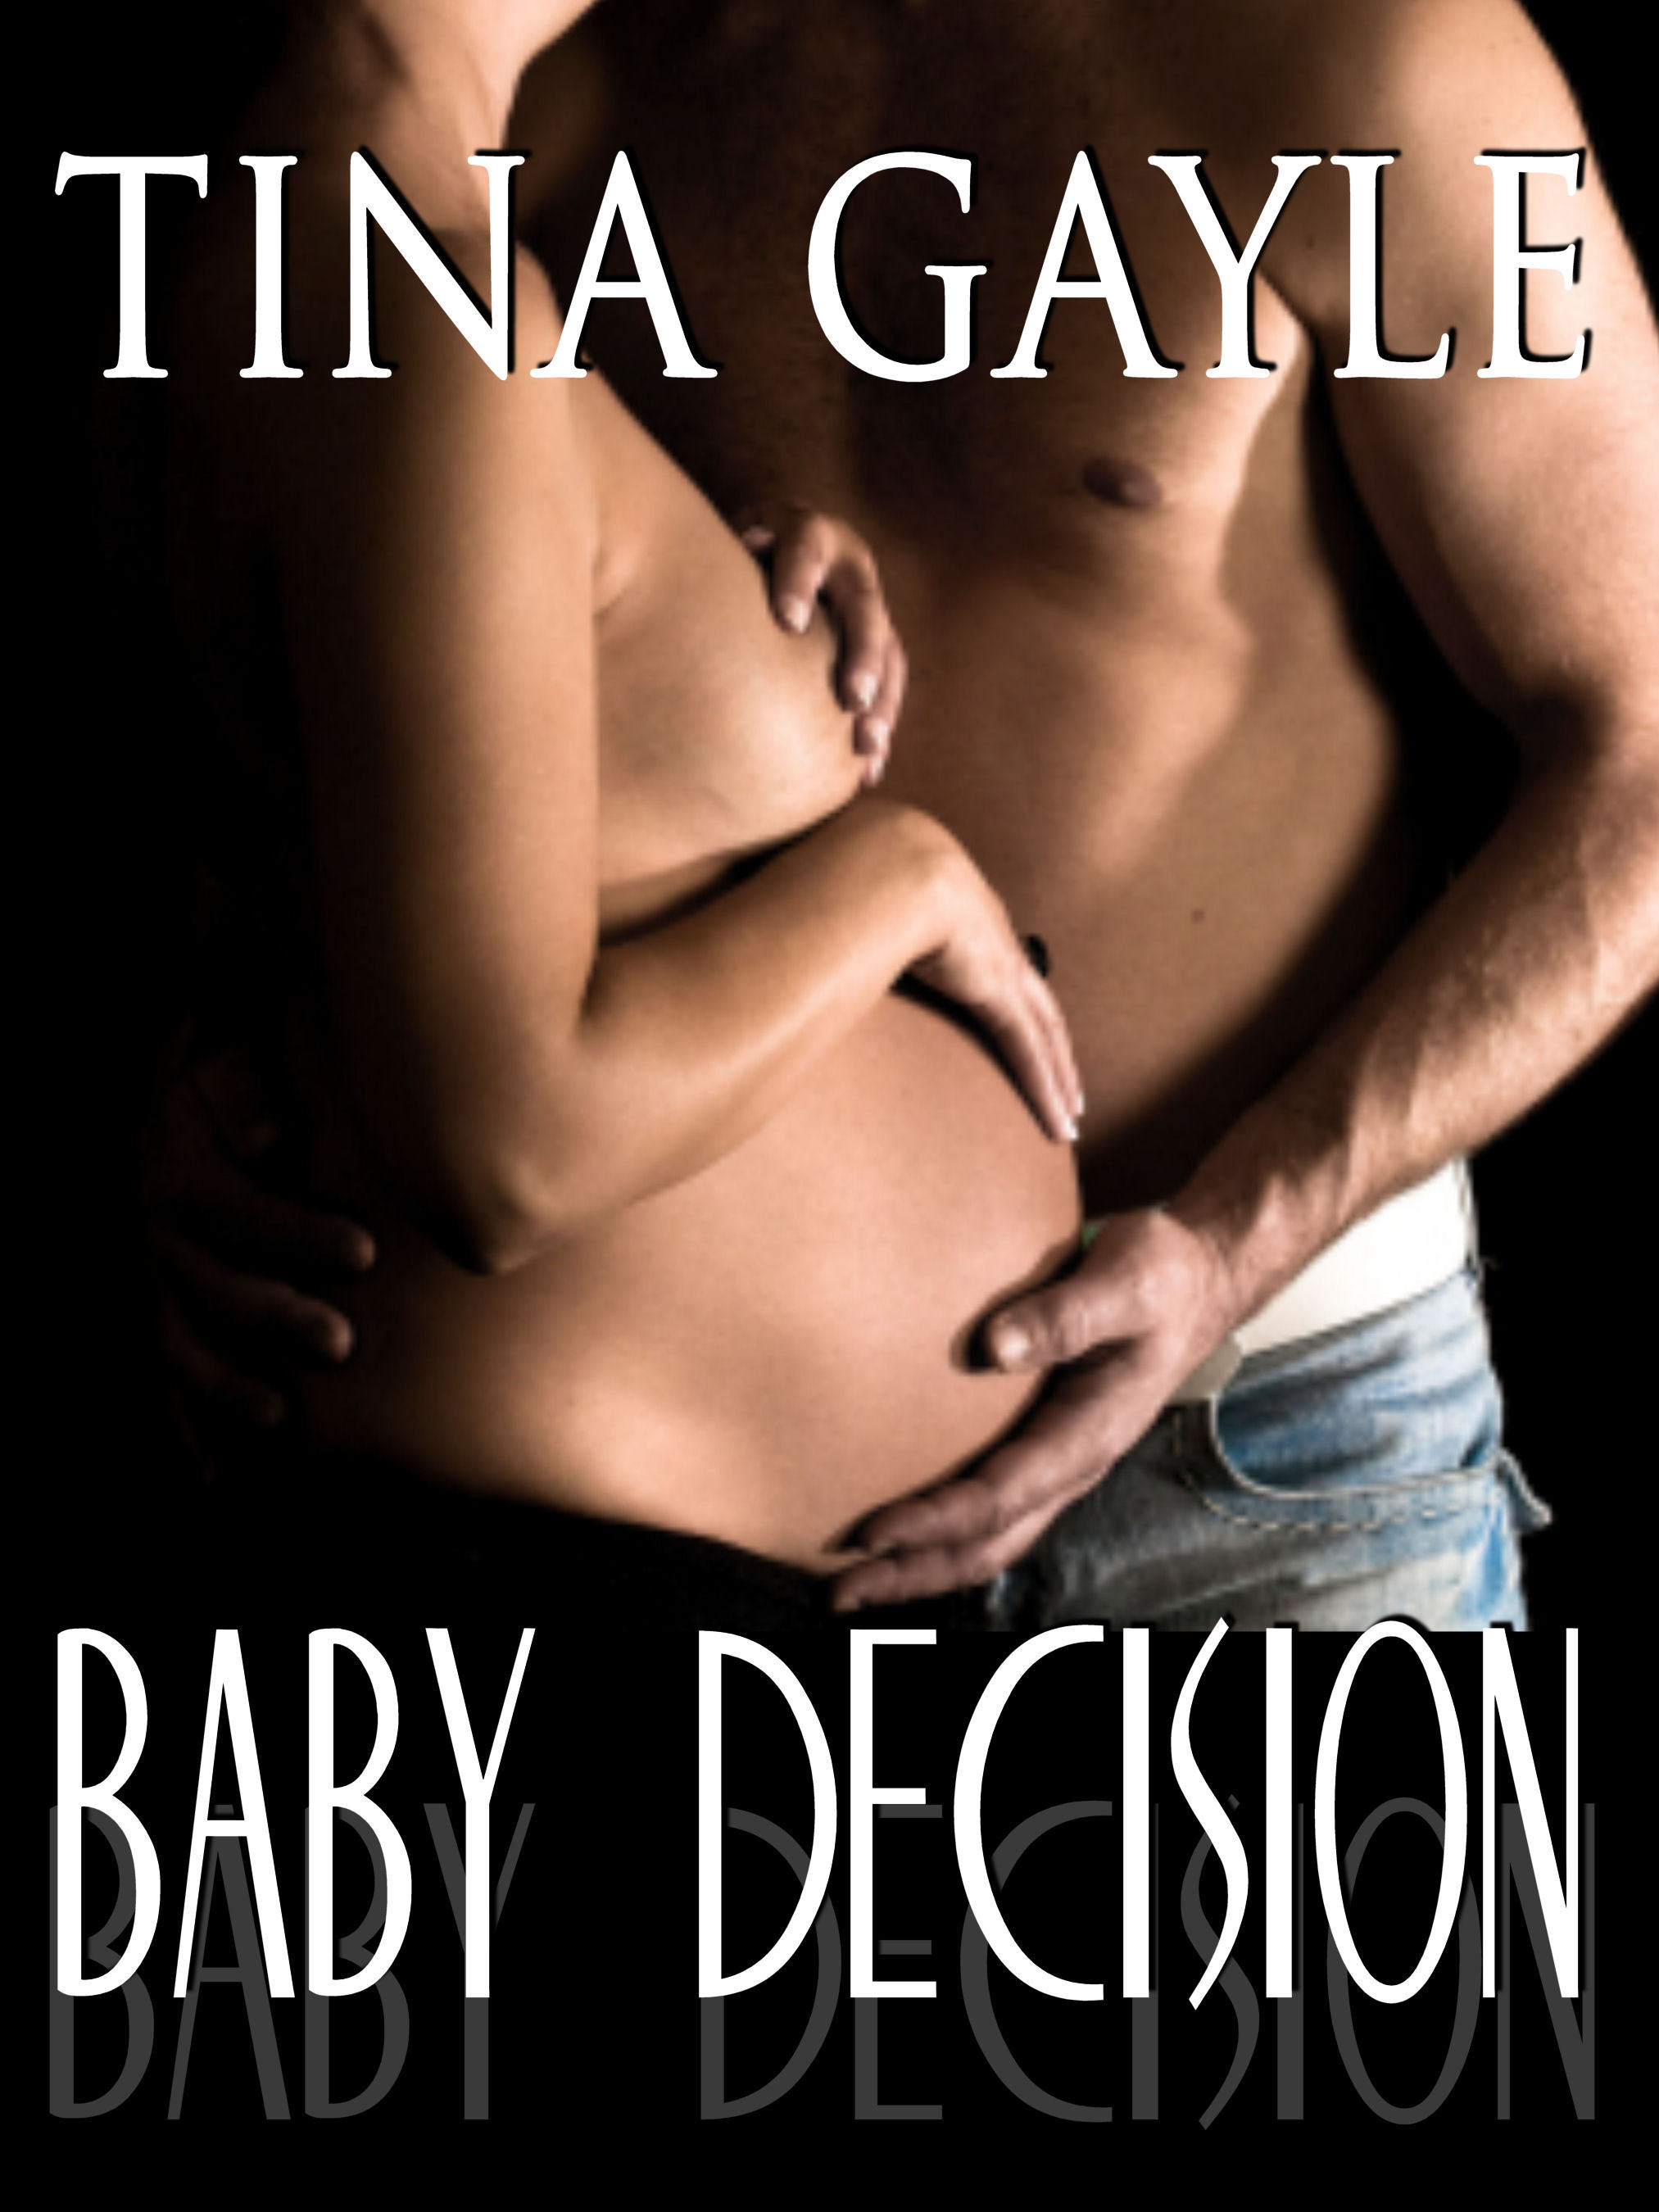 Baby Decision By: Tina Gayle